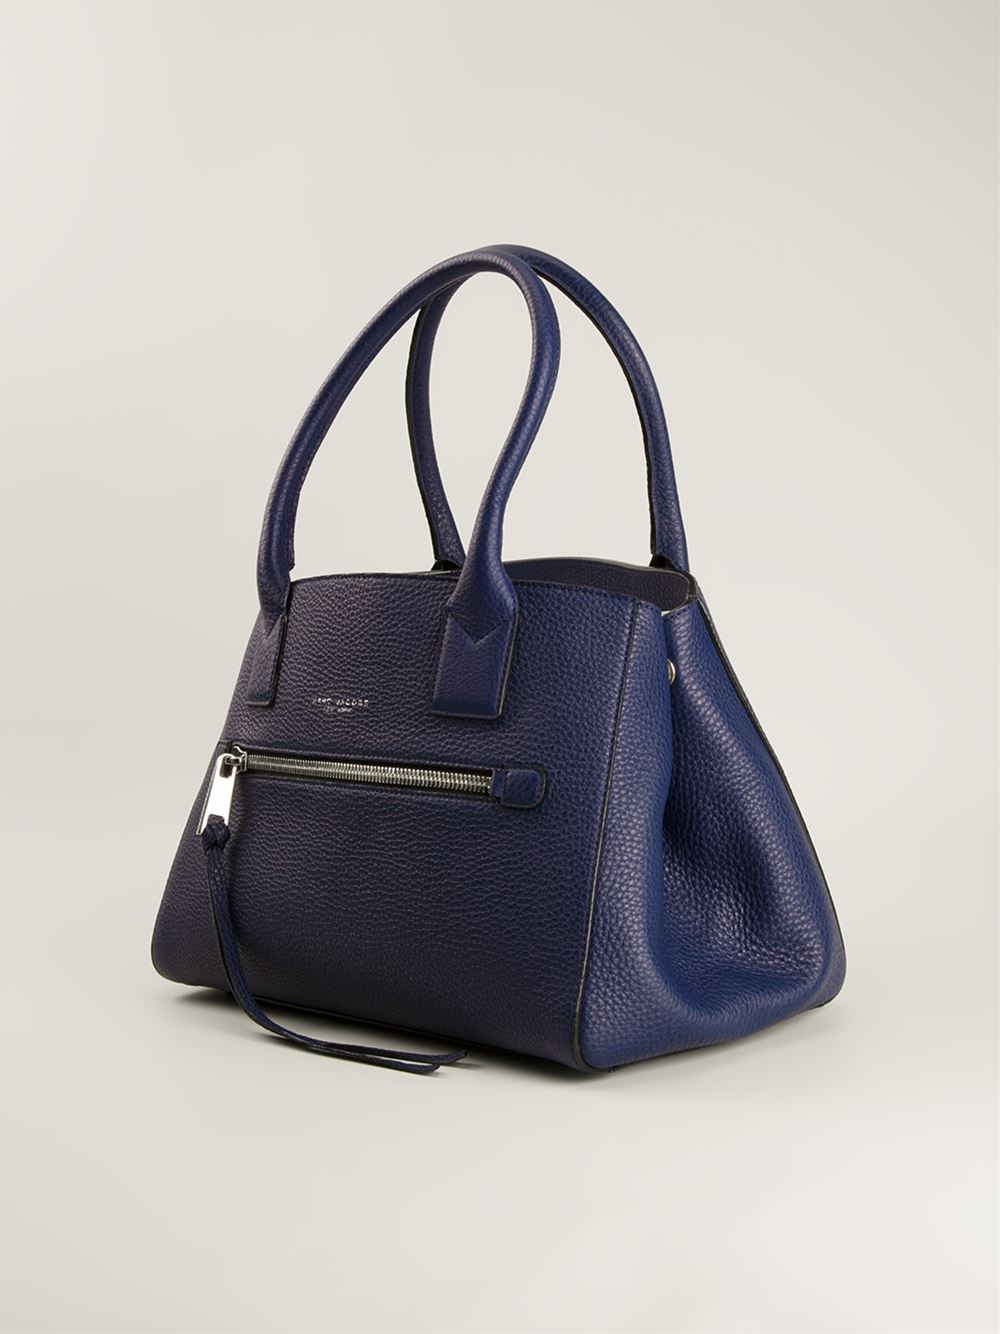 6481b1091df0 Marc Jacobs The Not So Big Apple Leather Tote in Blue - Lyst